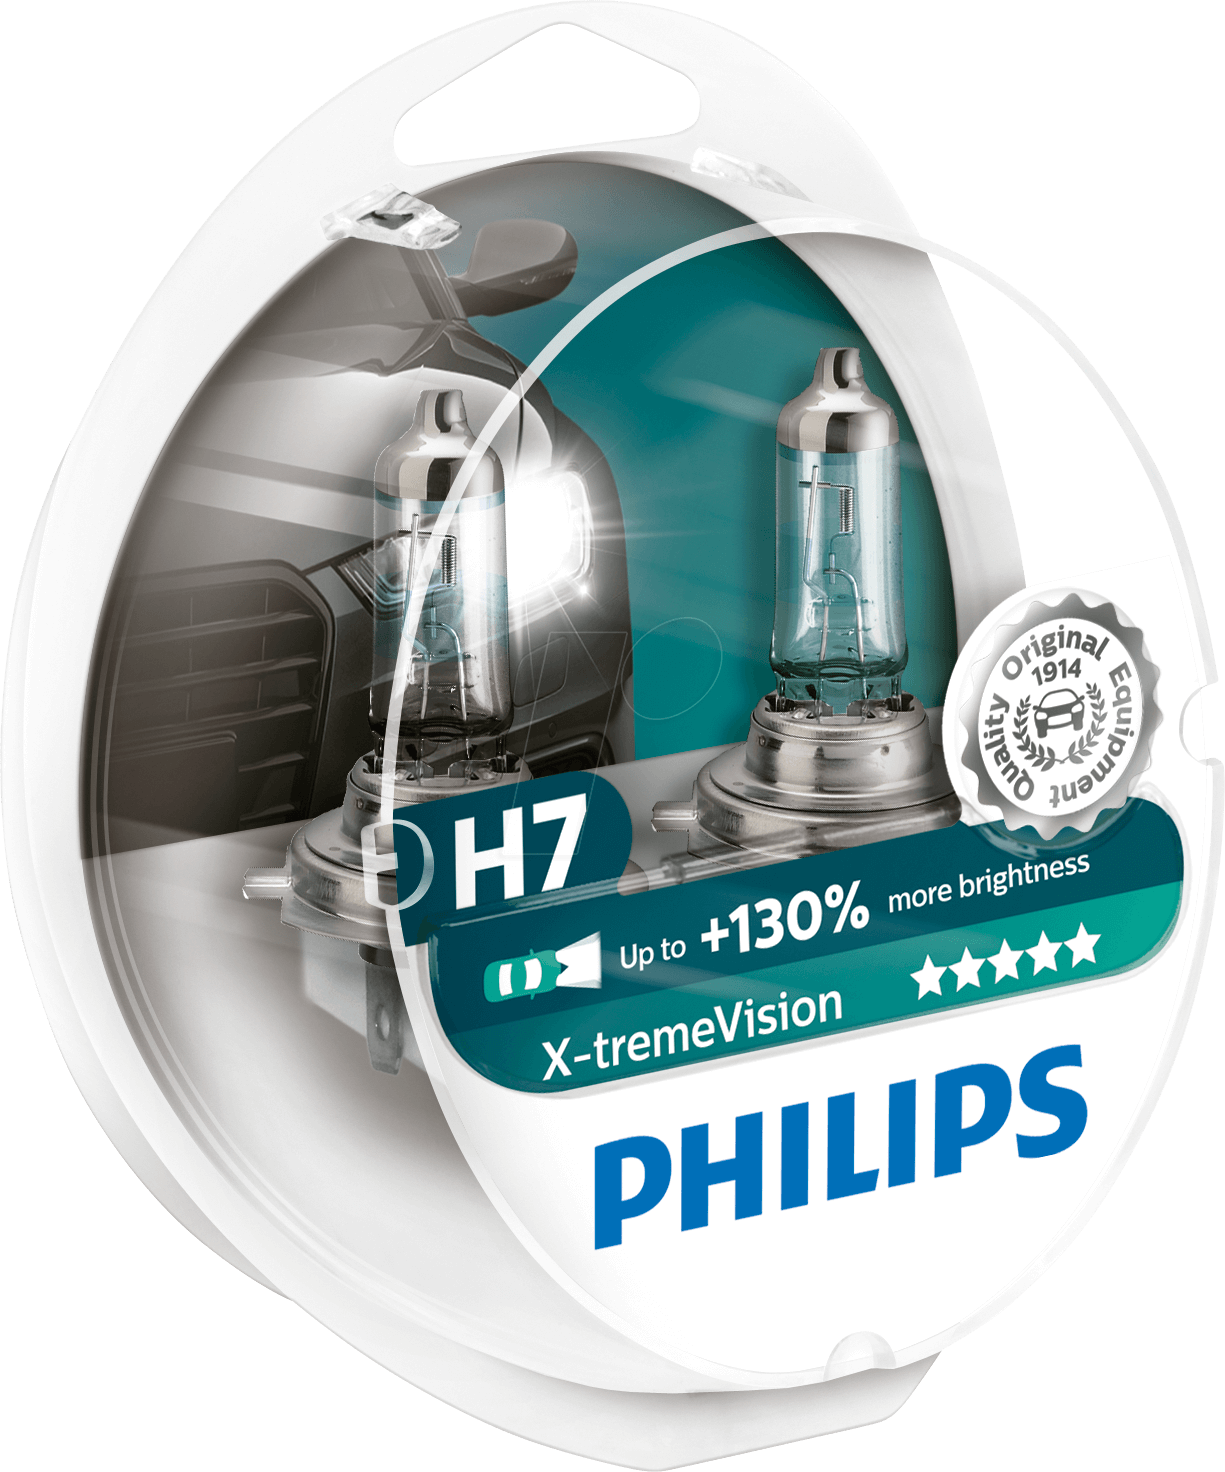 phi h7 xtreme 2 h7 headlight bulb philips x treme vision. Black Bedroom Furniture Sets. Home Design Ideas